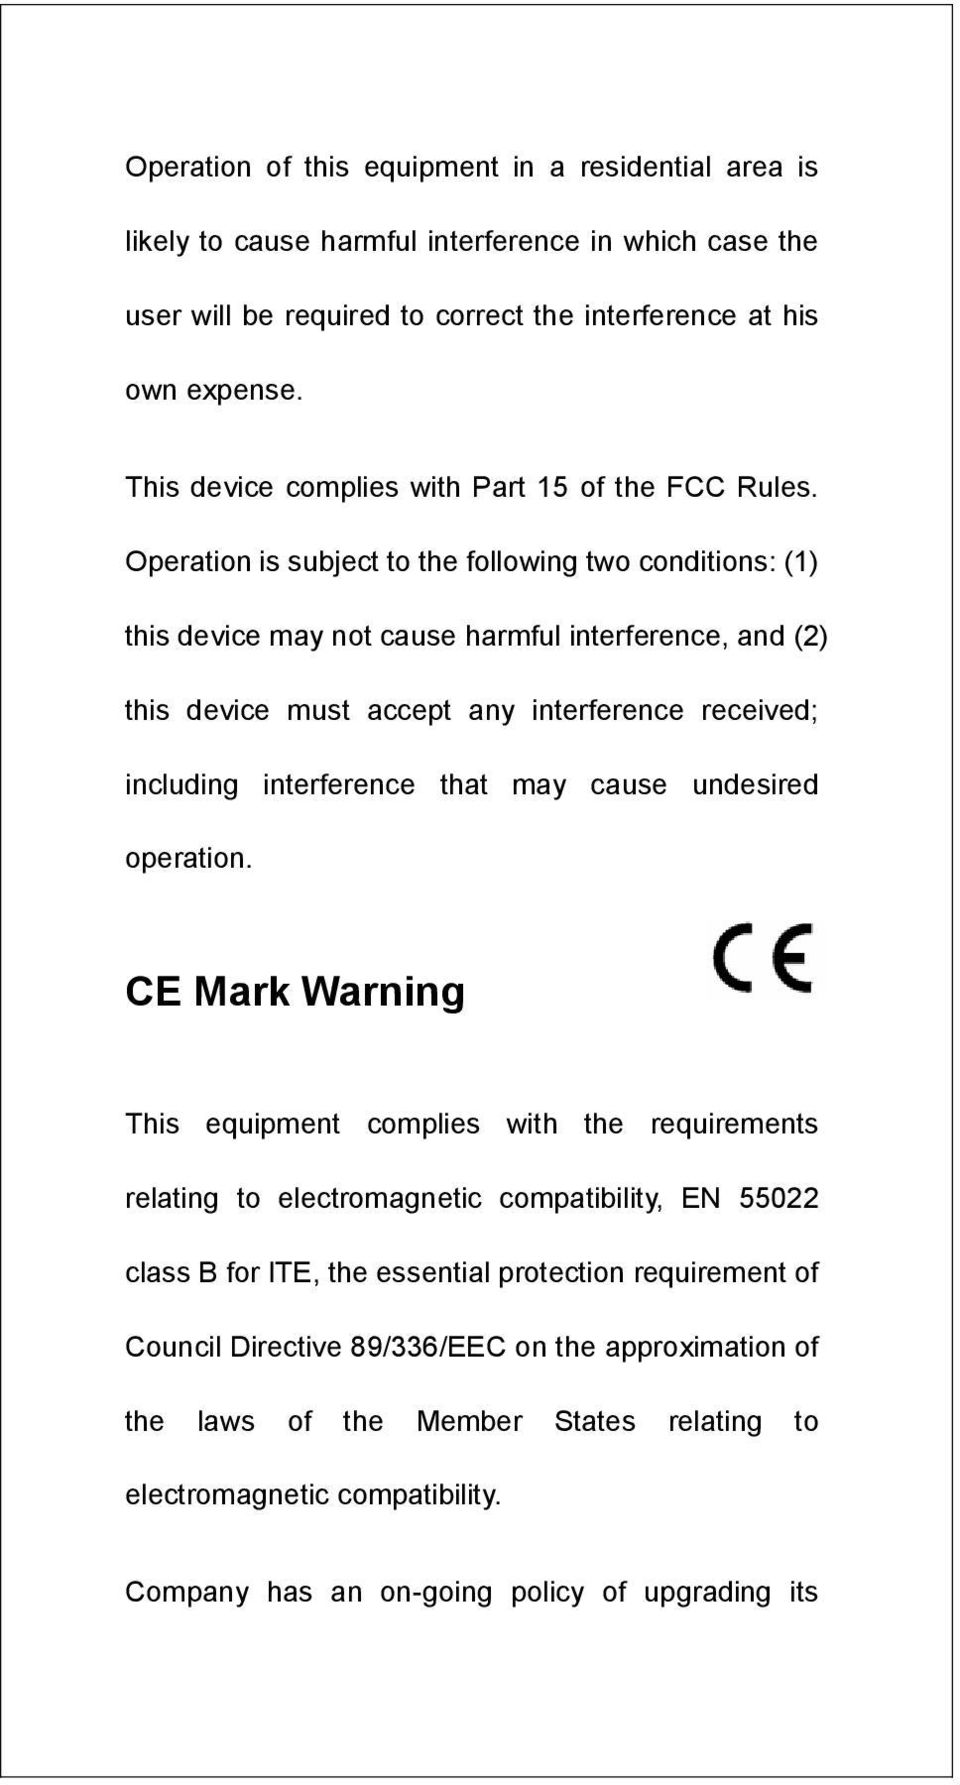 Operation is subject to the following two conditions: (1) this device may not cause harmful interference, and (2) this device must accept any interference received; including interference that may